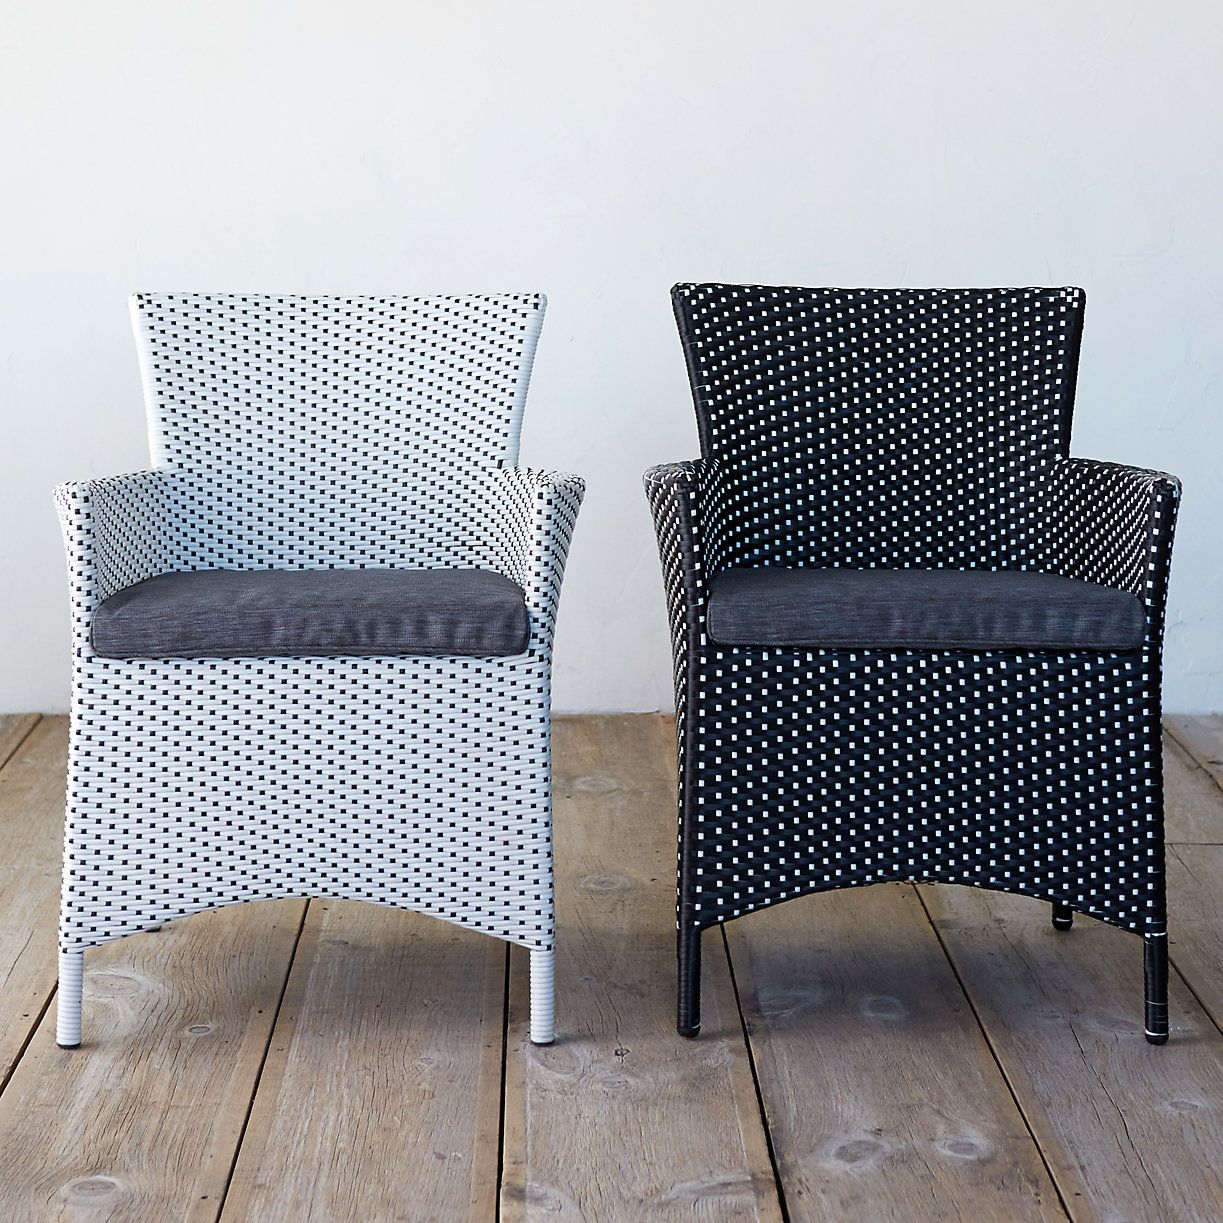 Classic All Weather Wicker Dining Chair, Two-Tone in Outdoor Living Outdoor Seating at Terrain